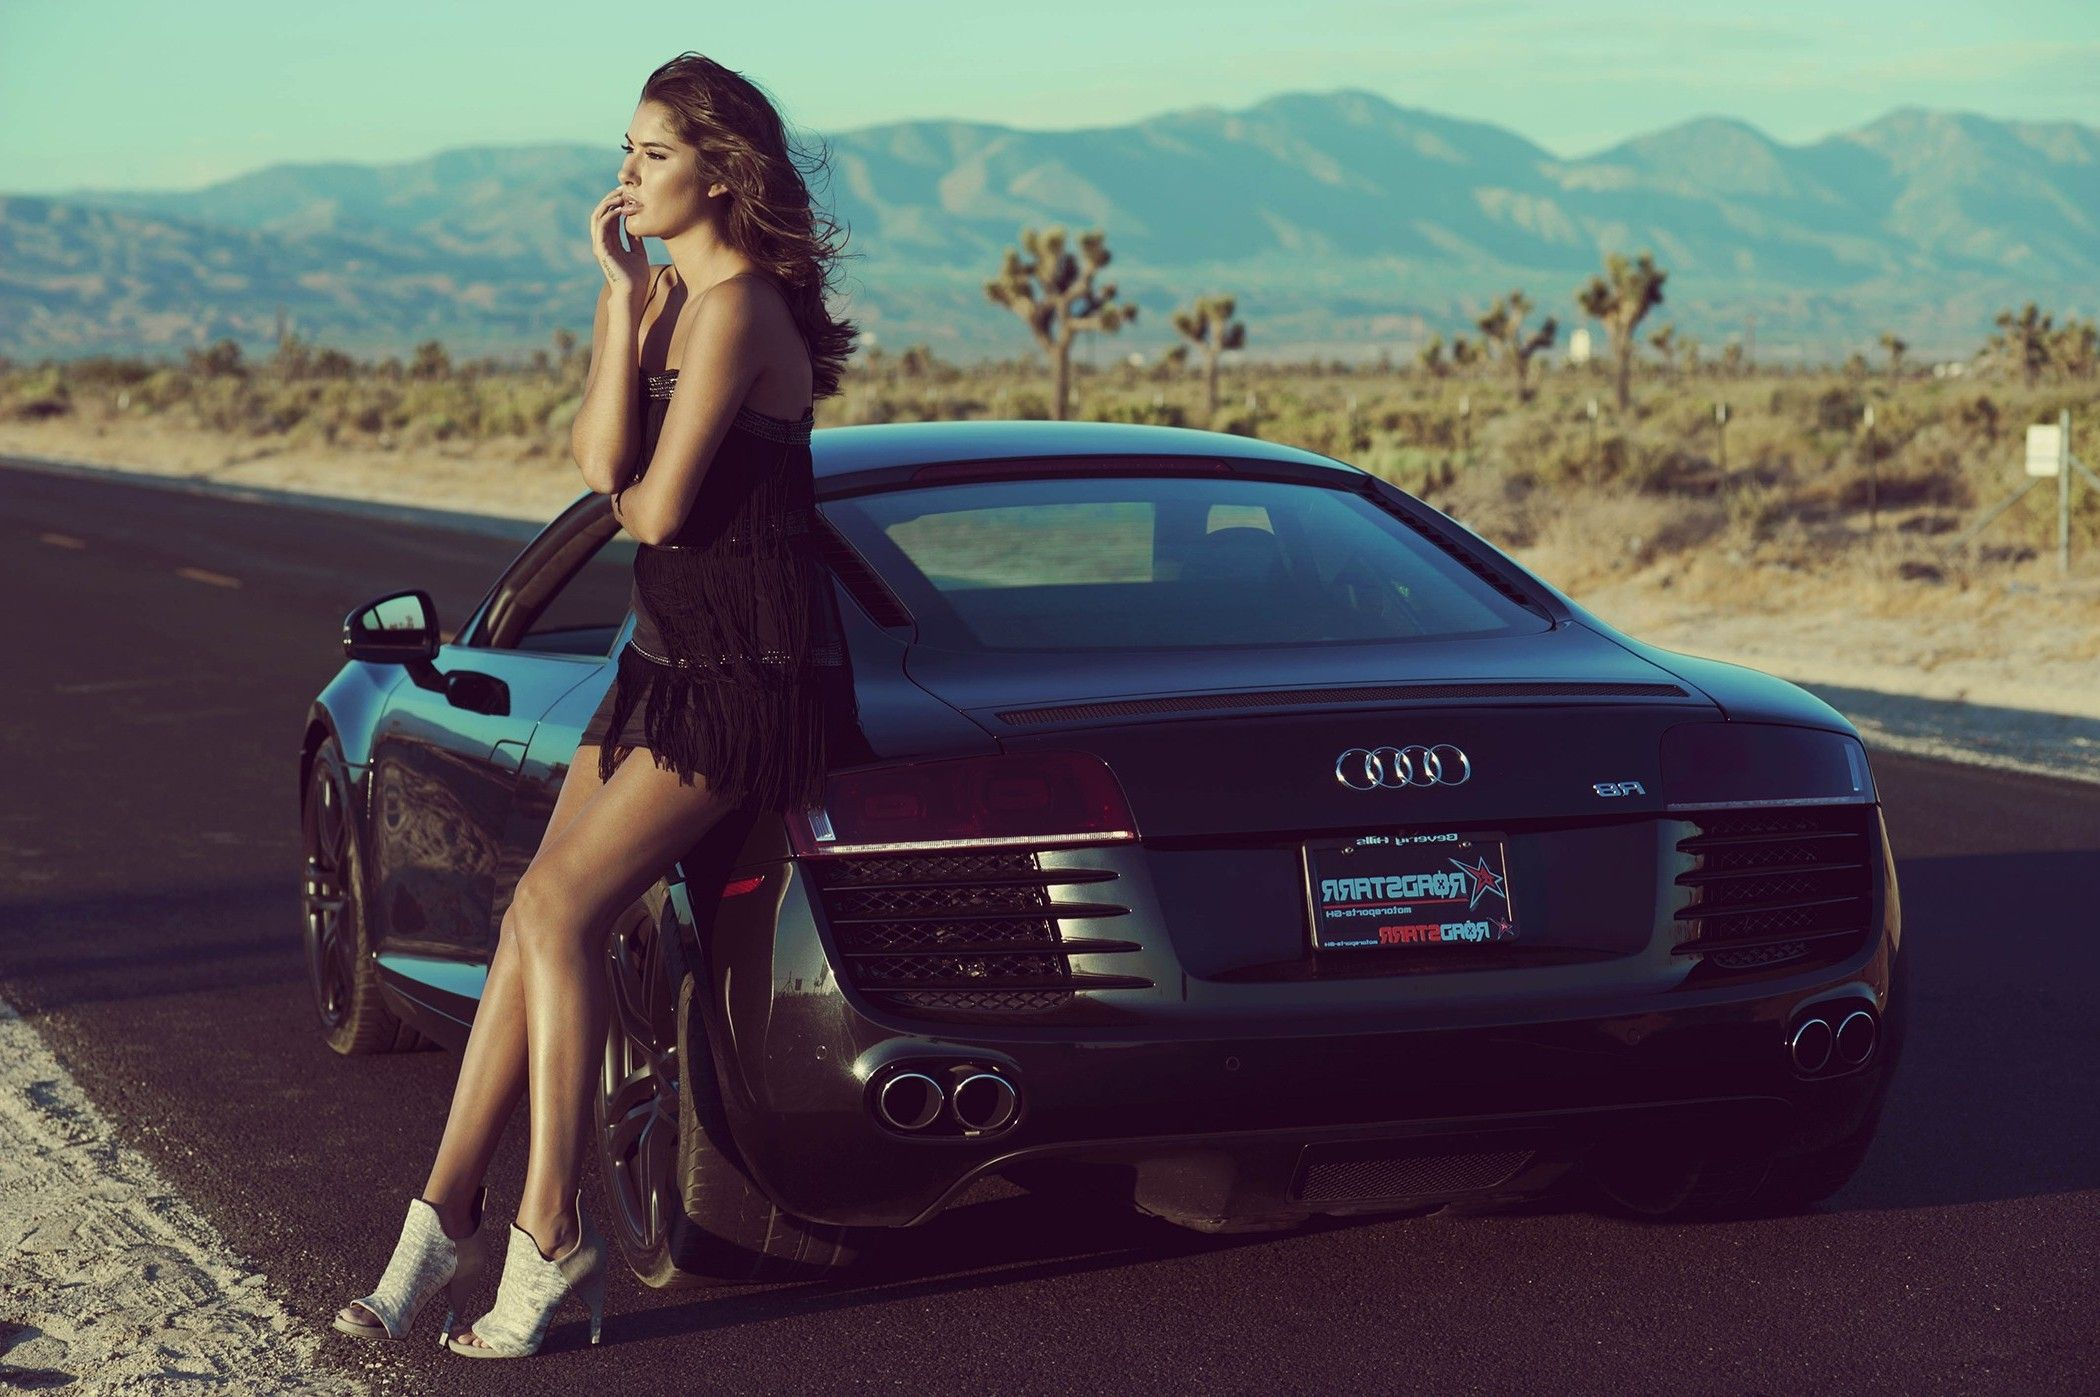 Download Hd Wallpapers Of 34848 Women Car Black Dress Audi Brunette Women With Cars Desert Free Download High Quality And Wide Audi Audi Girl Audi Girls